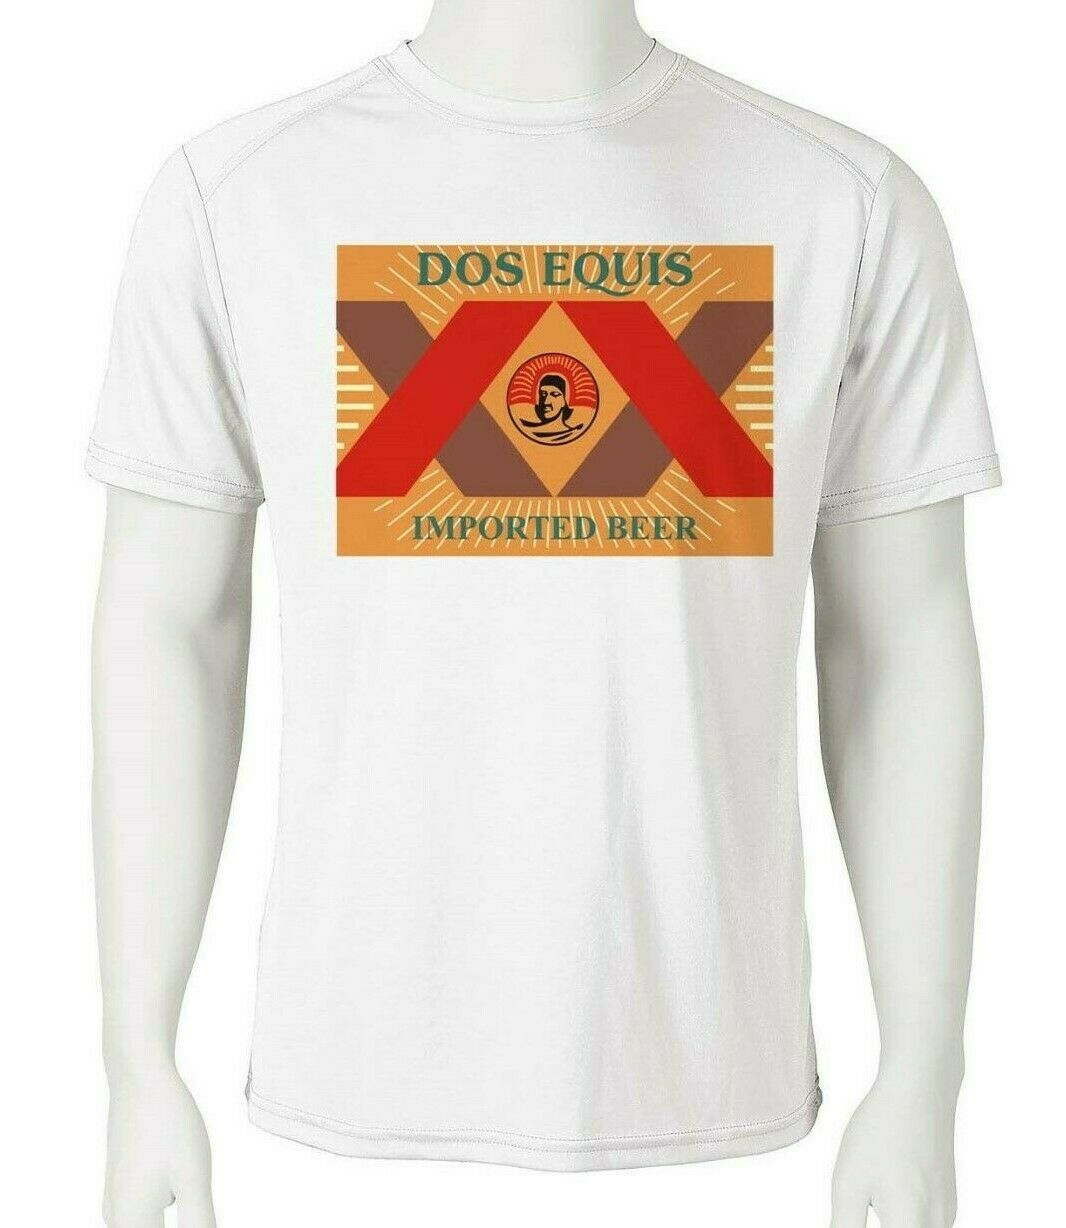 Dos equis dri fit graphic tshirt moisture wicking graphic printed active spf tee